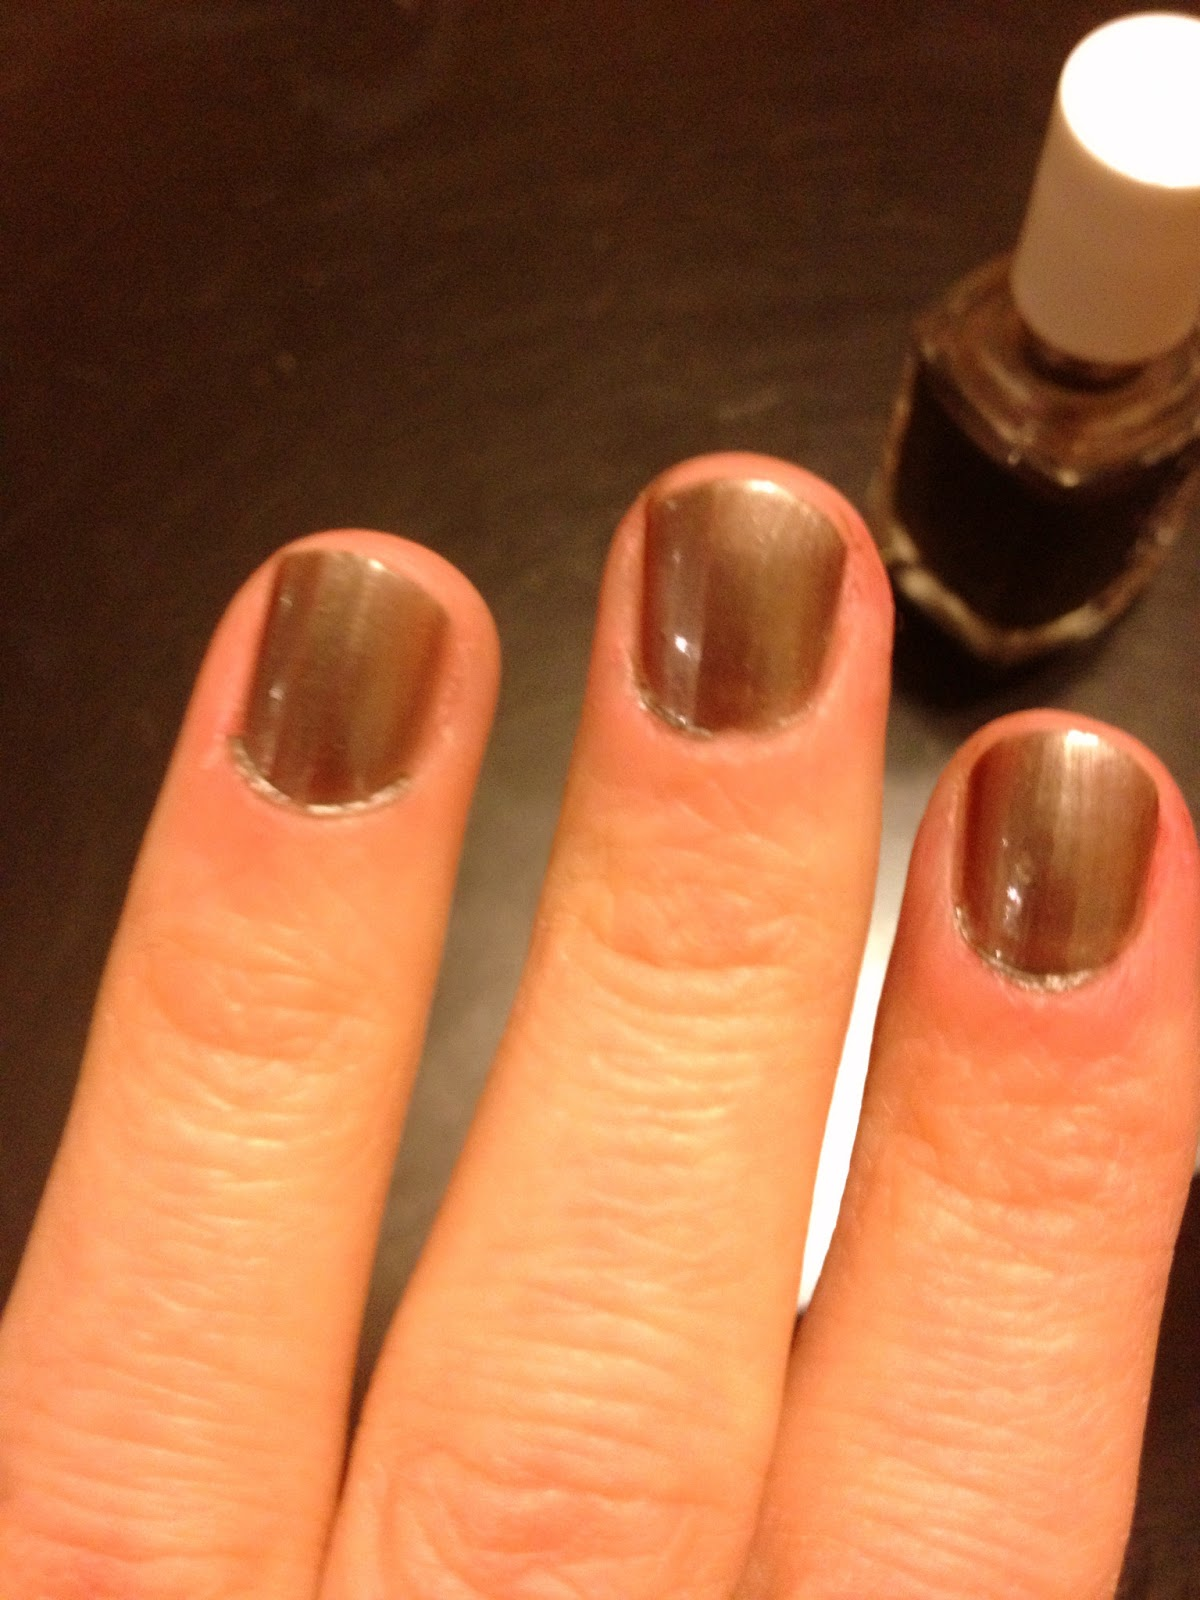 Review of essie Repstyle Nail Polish – Styled by Jess